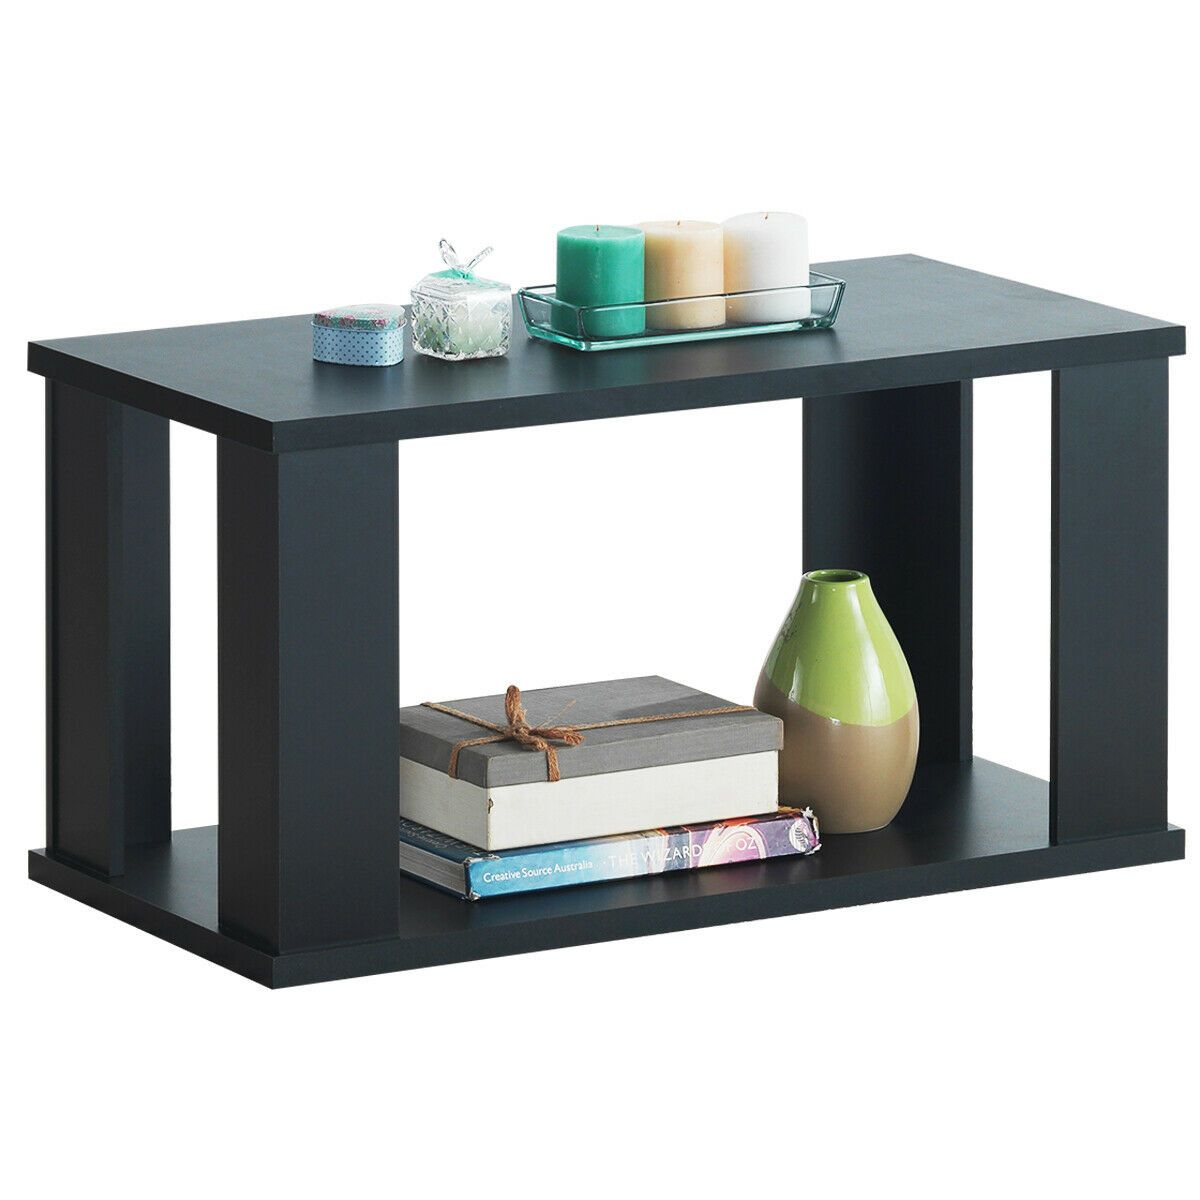 2 Tier Rustic Vintage Coffee Table With Storage Shelf In 2020